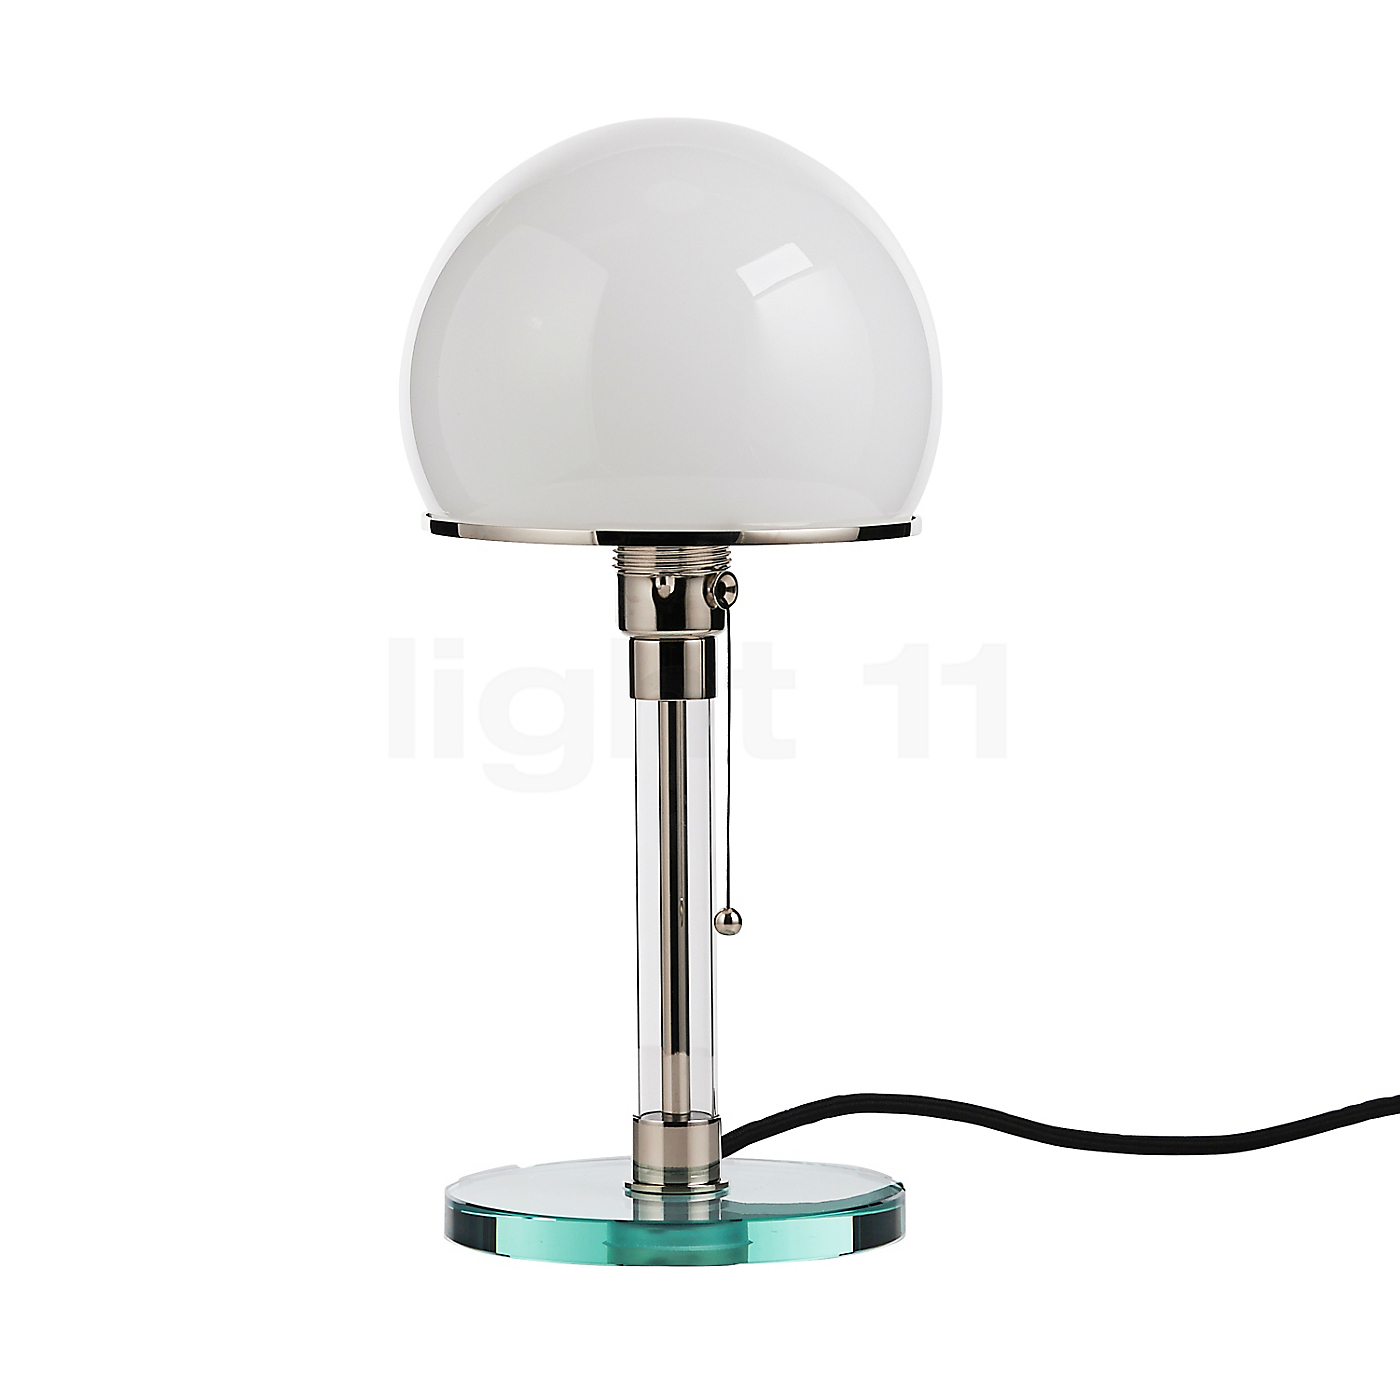 tecnolumen wagenfeld wg 24 table lamp table lamps buy at